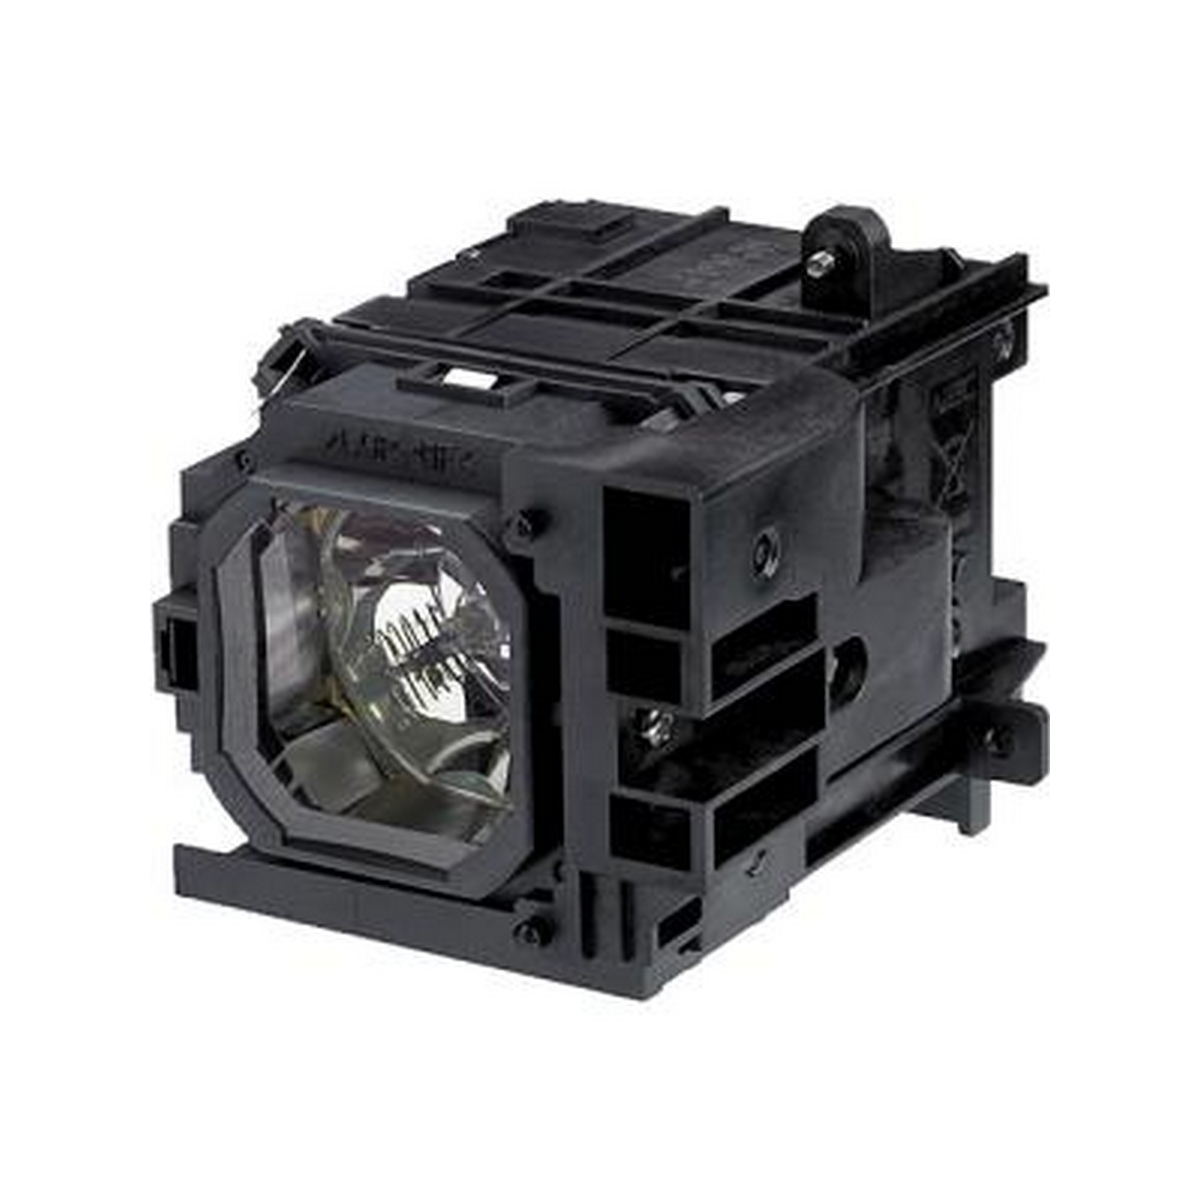 NEC-NP21LP / 60003224 Original: Lamp For NEC PA550W Projector Part Code: NP21LP / 60003224 PA550W